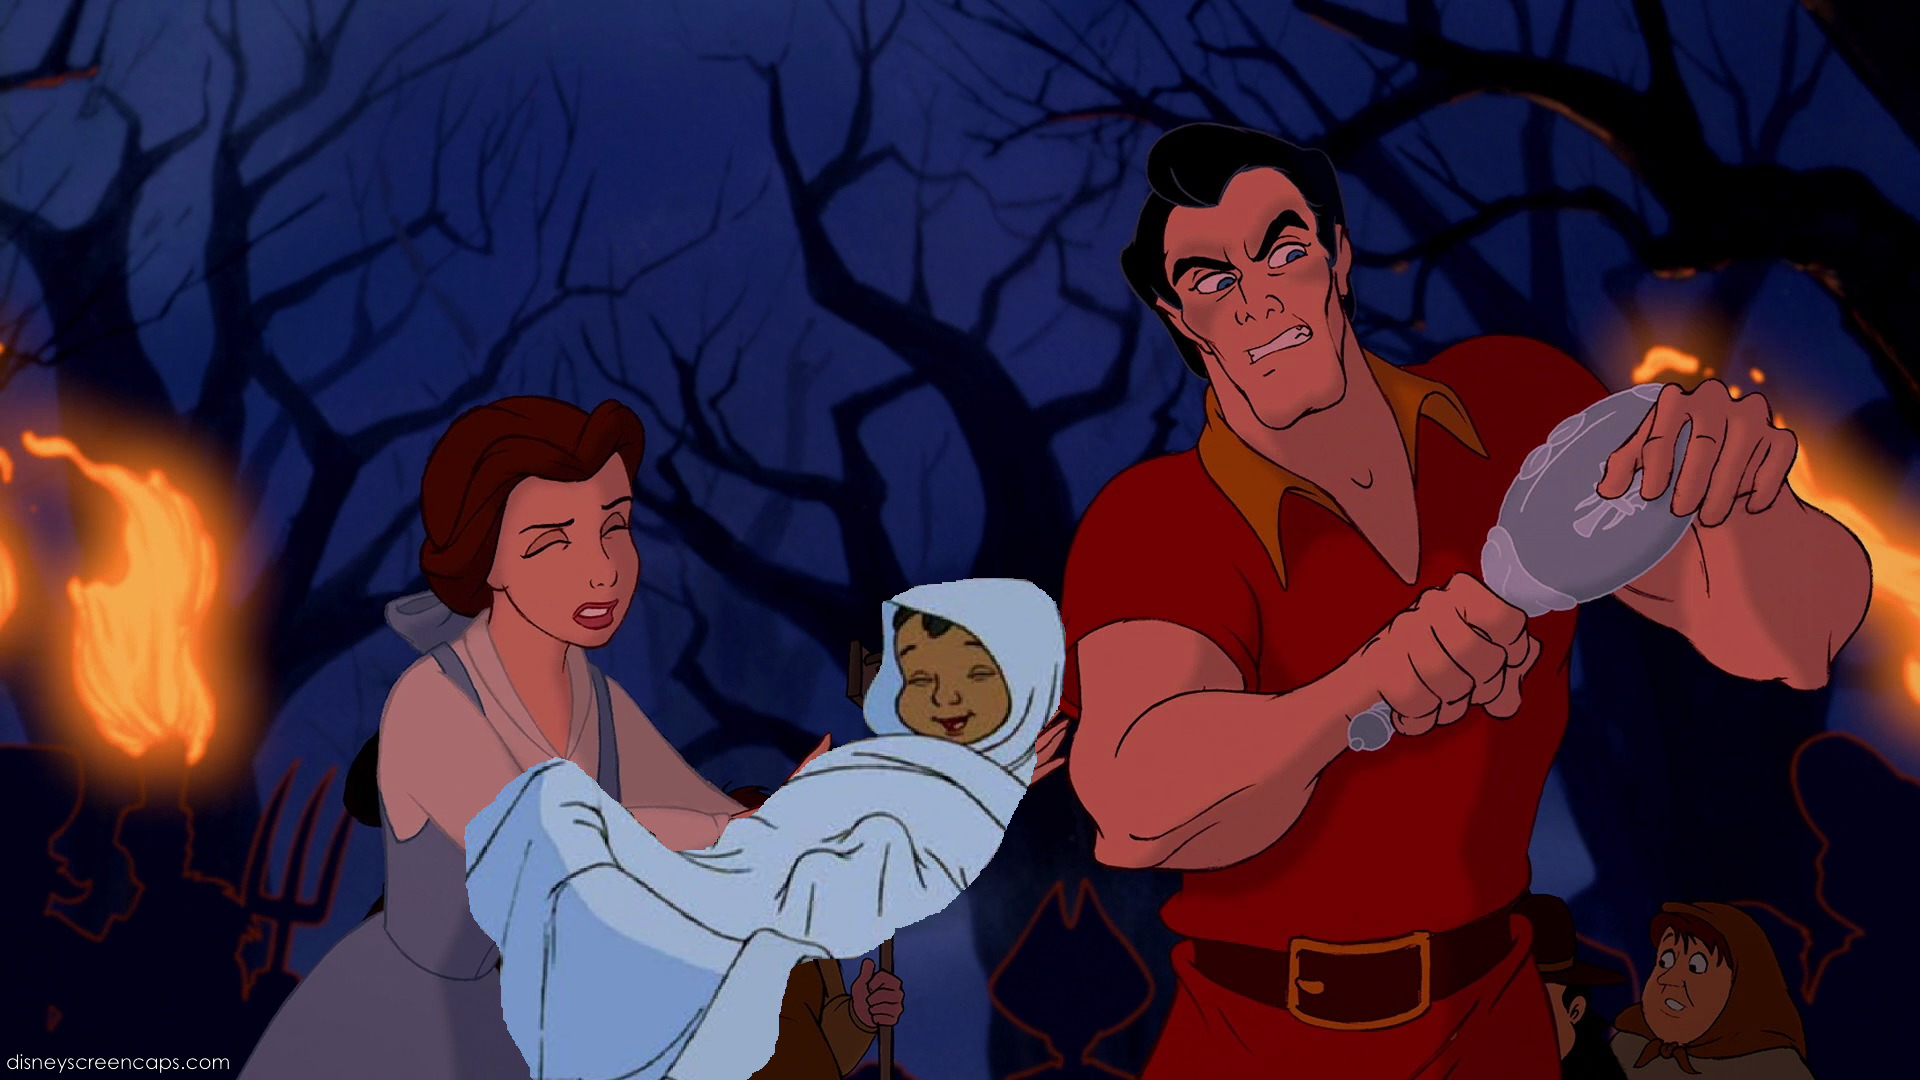 Why, Gaston, Why!